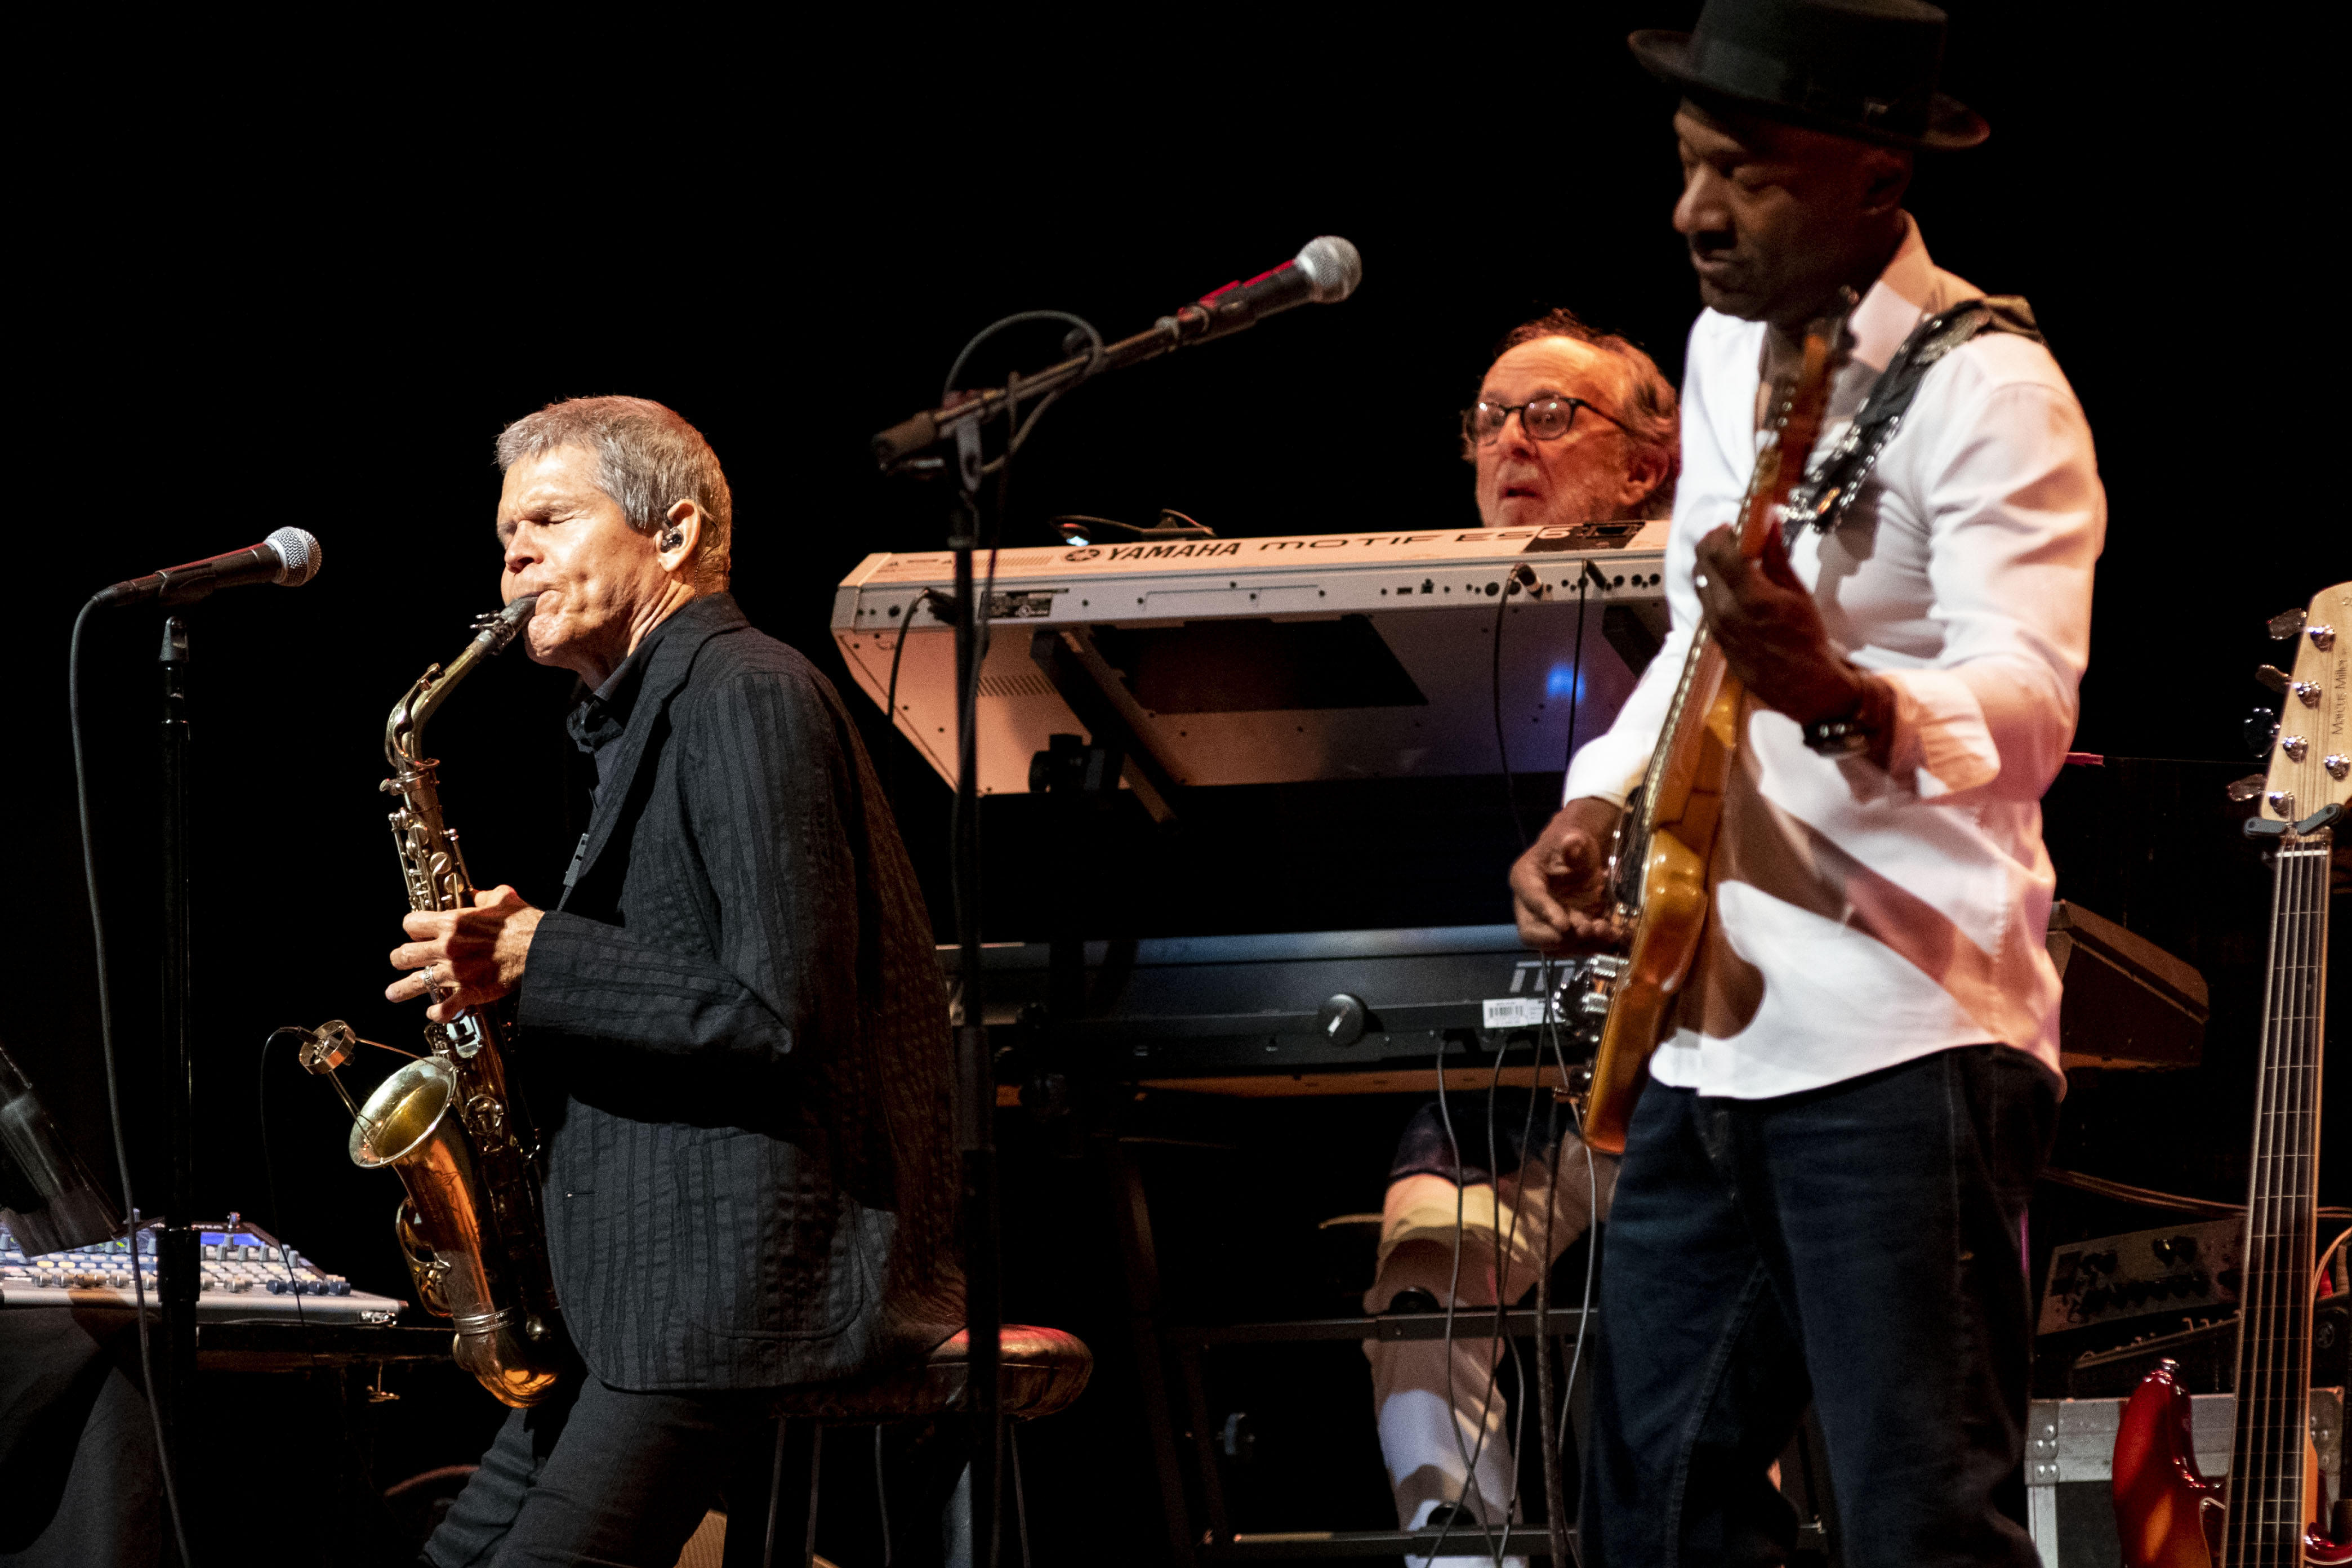 David Sanborn, Bob James, and Marcus Miller